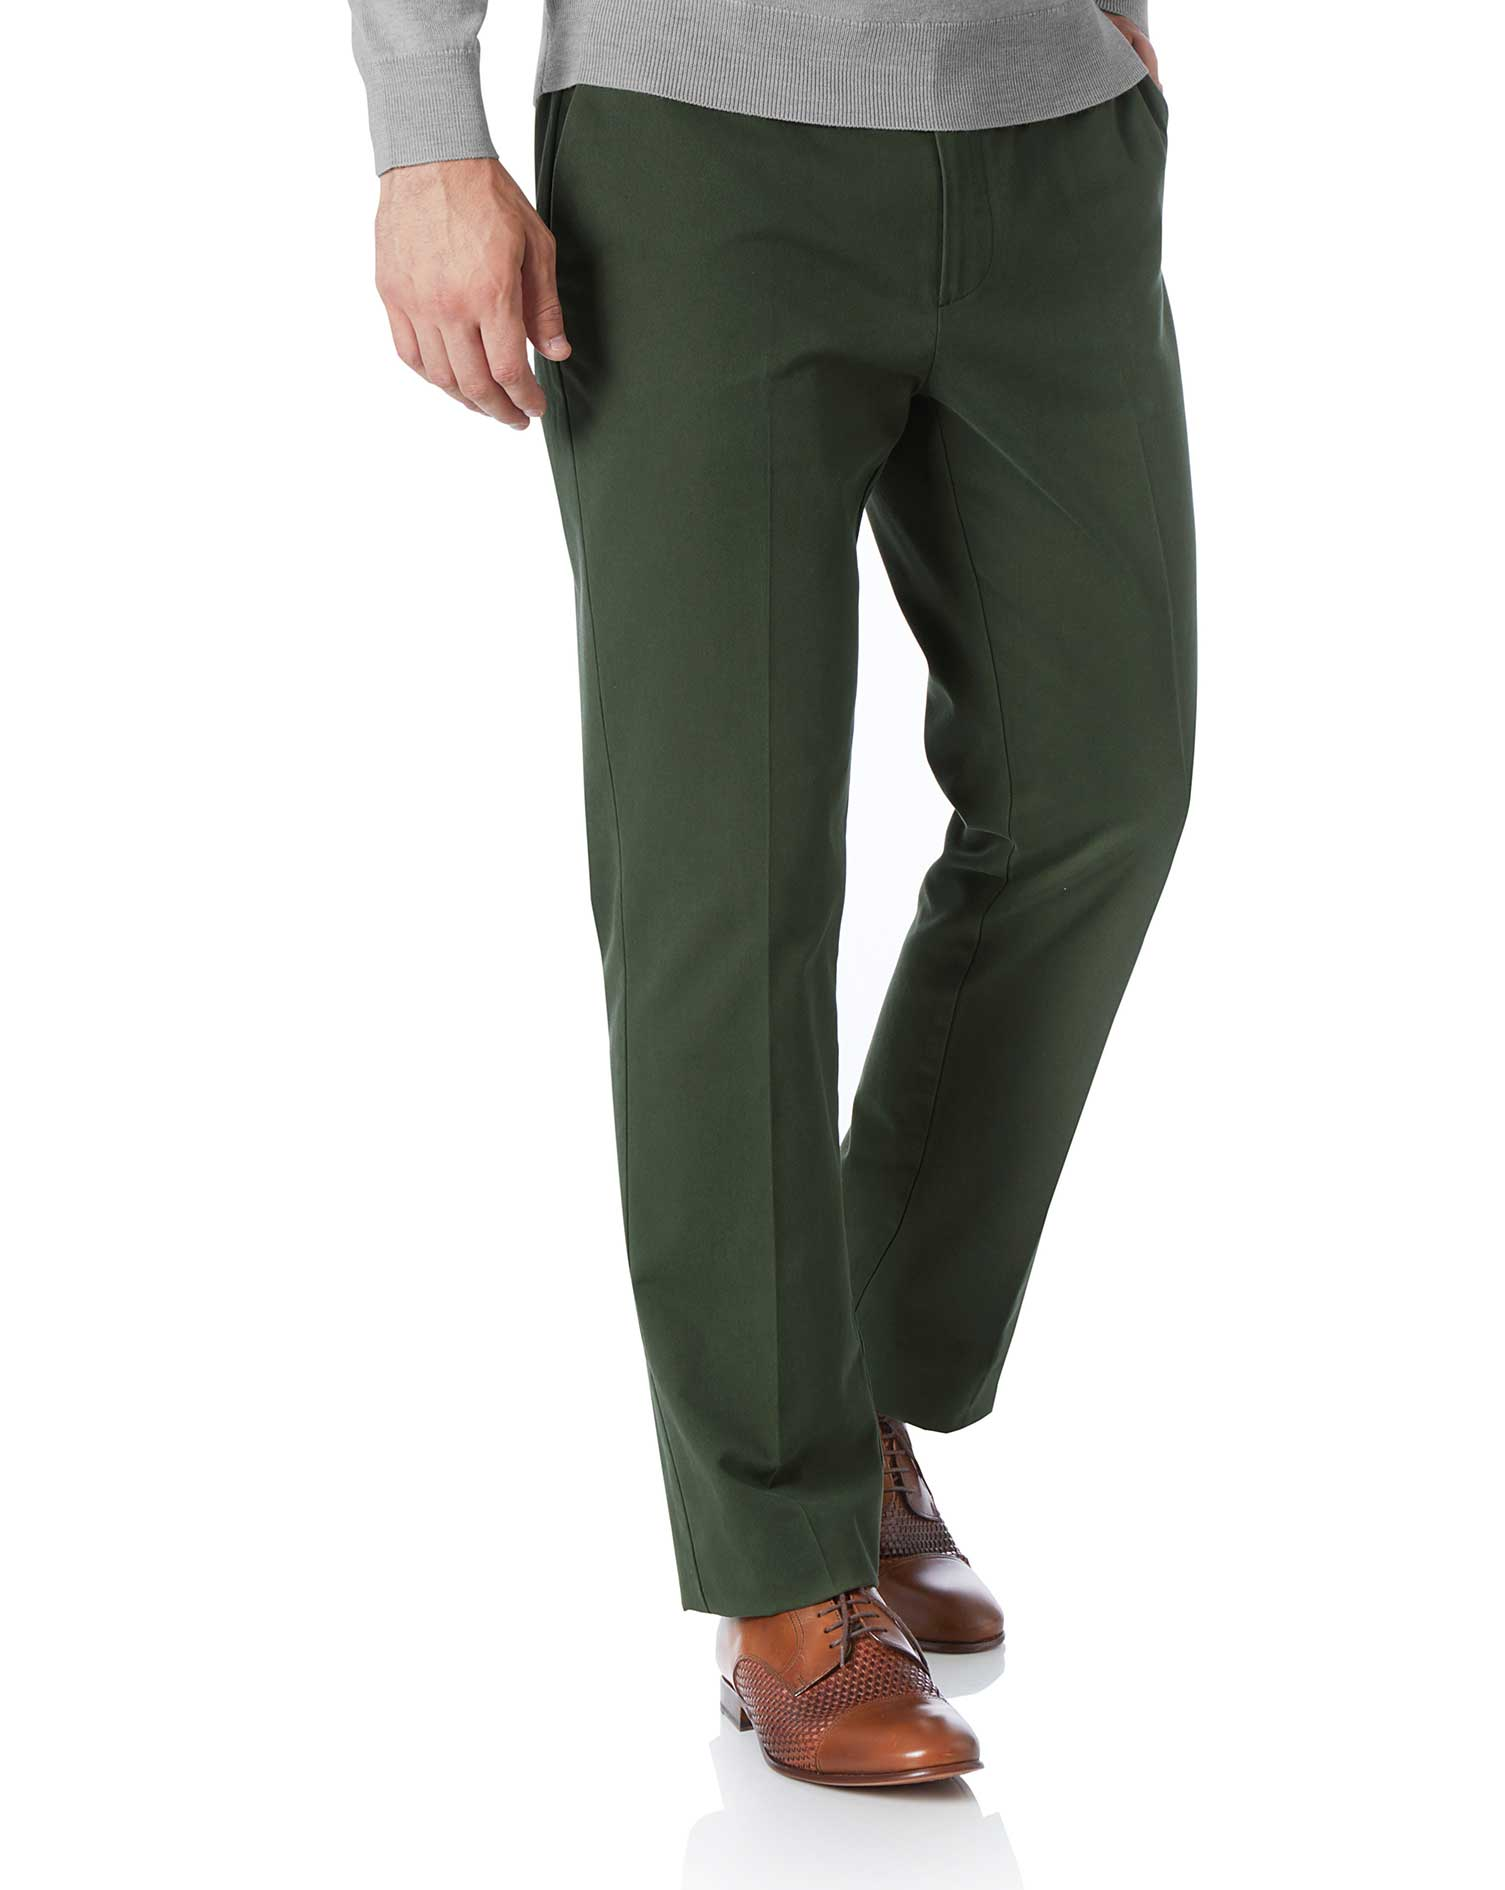 dark green slim fit flat front non-iron cotton chino pants size w38 l34 by charles tyrwhitt